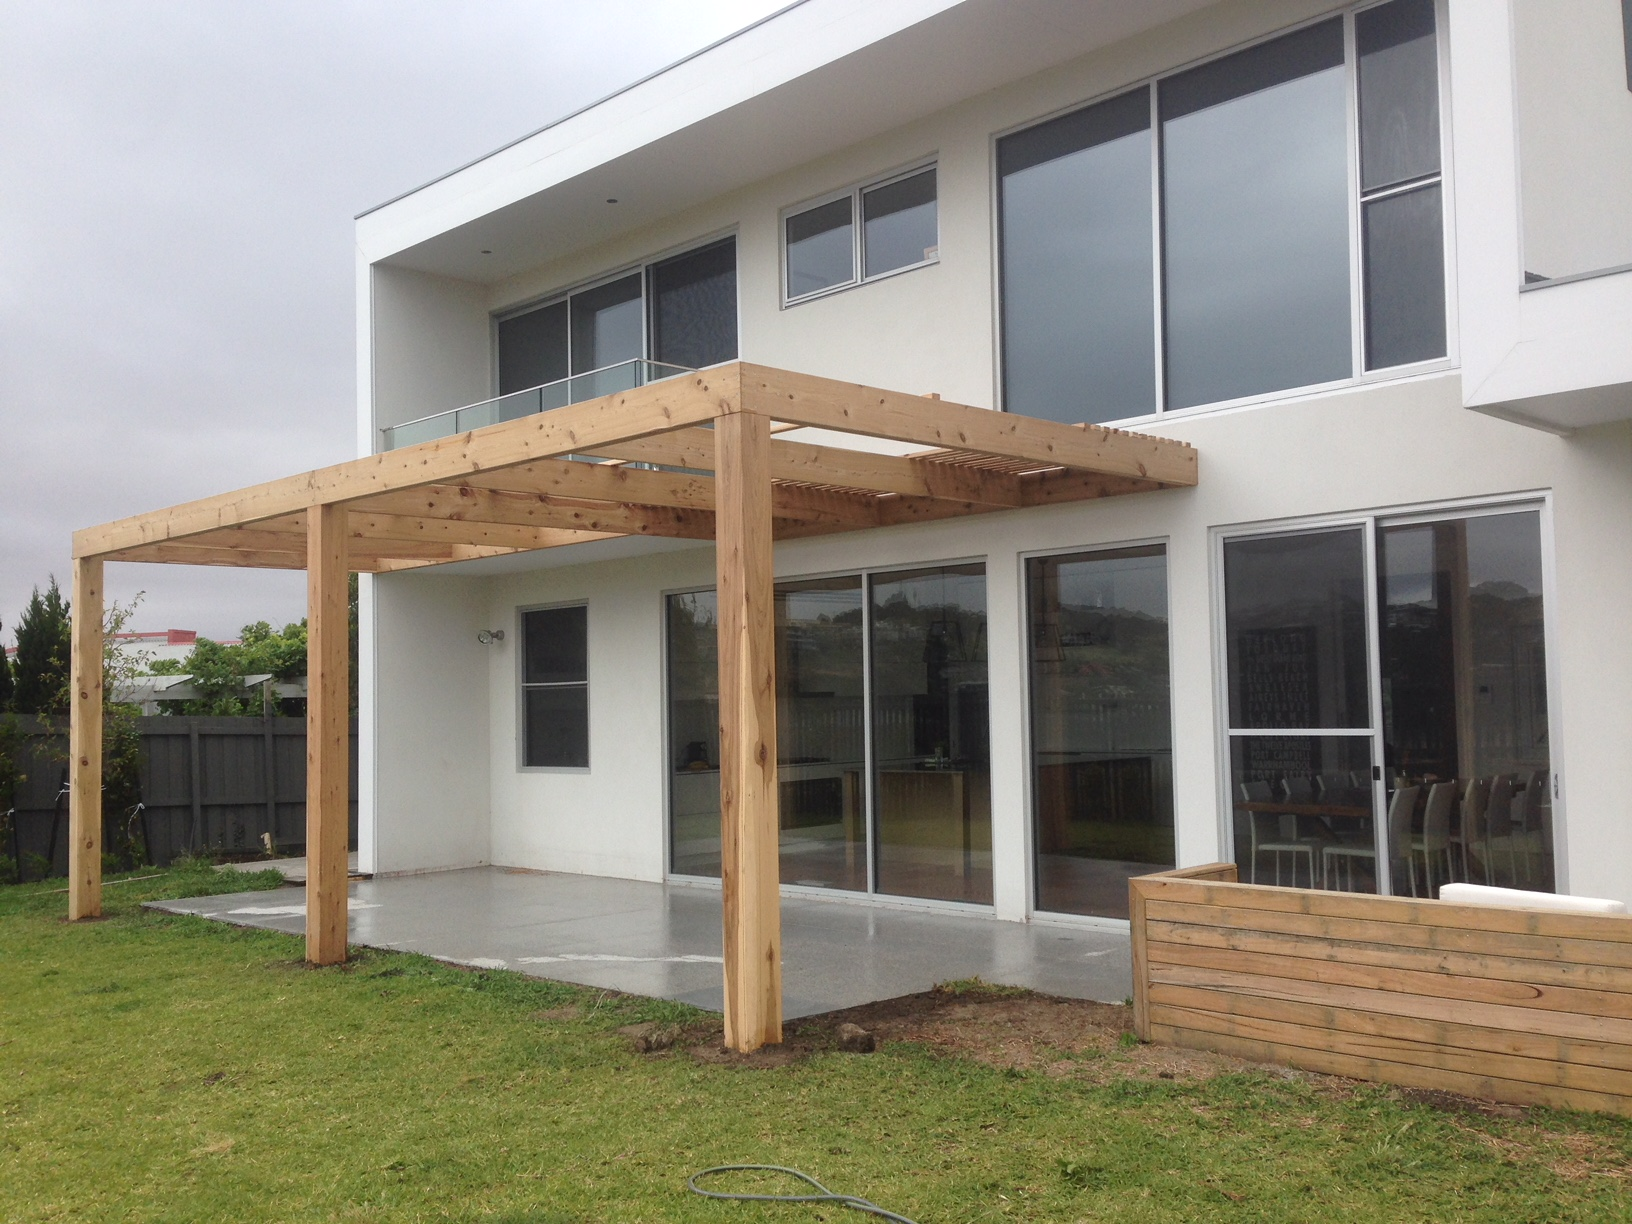 Cypress open pergola with shade battens.